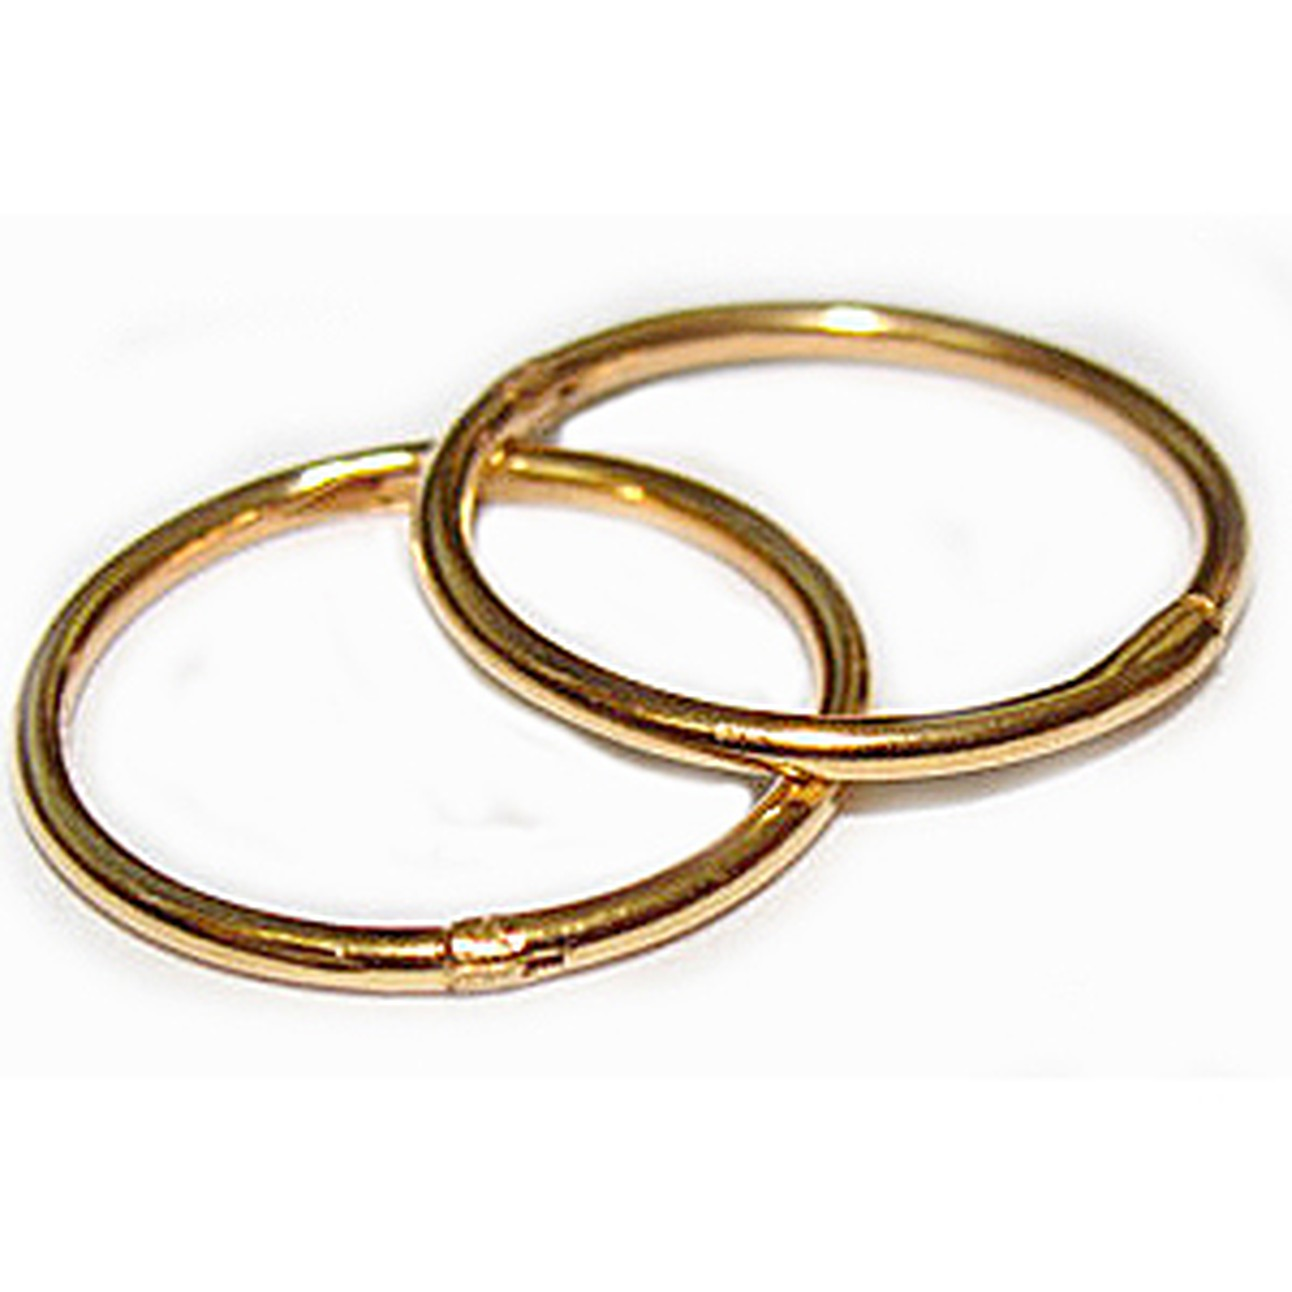 008552b23d32a6 14mm 22K GOLD OVER SOLID STERLING SILVER HINGED HOOP EARRINGS, Easy On &  Off !